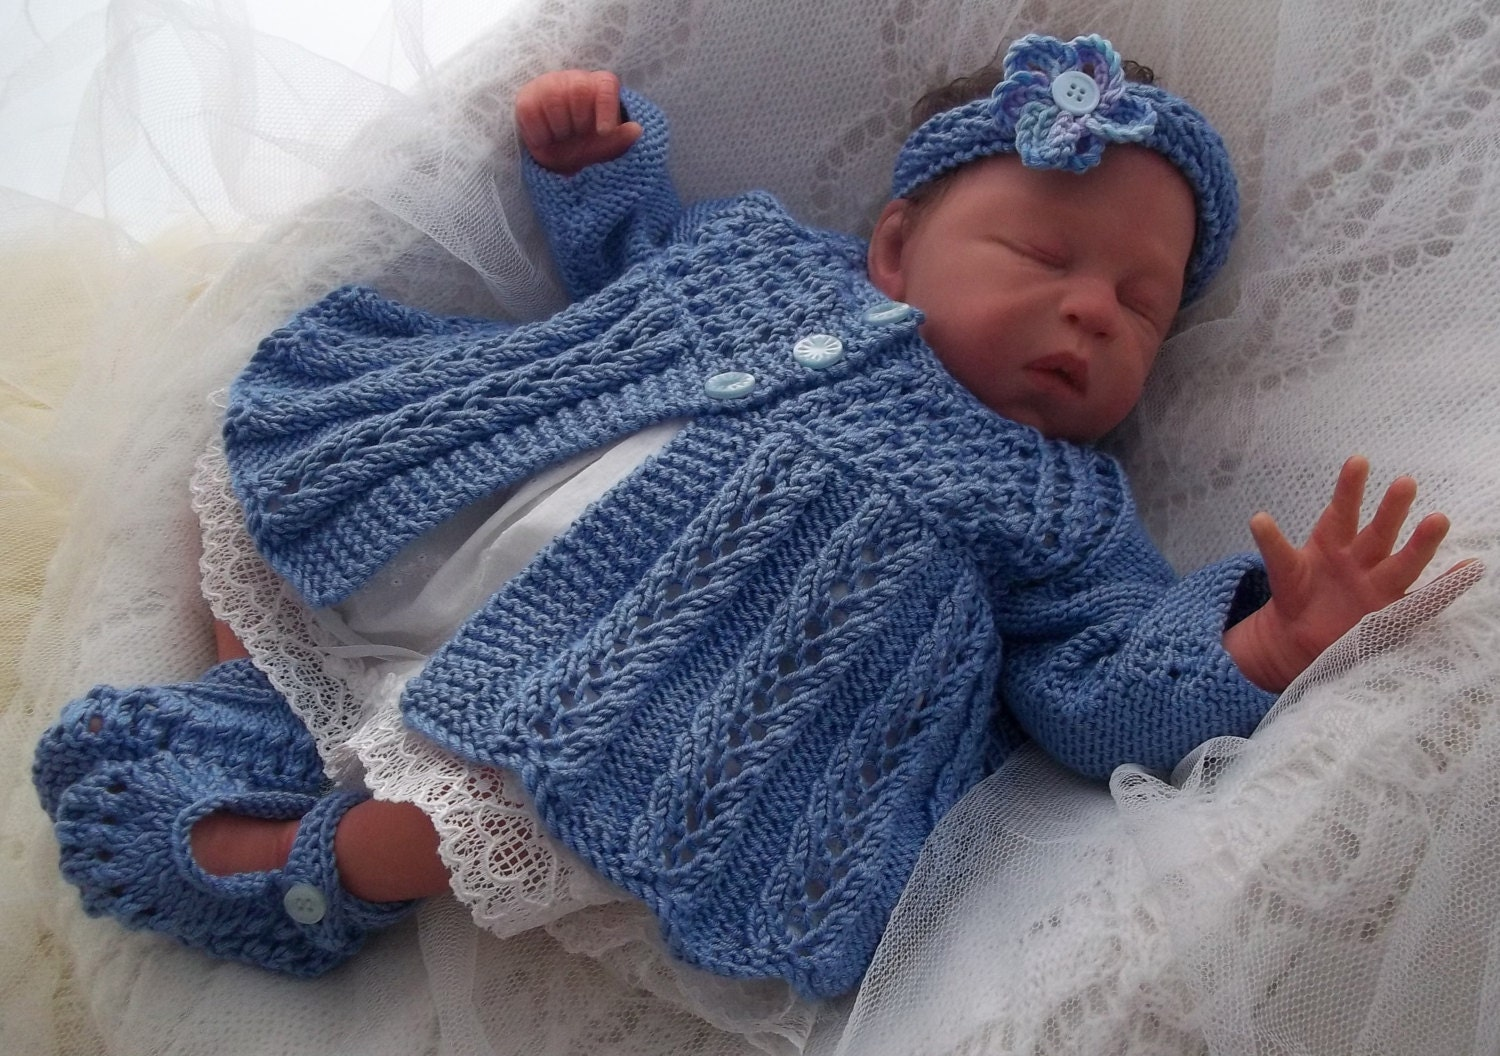 Knitting Patterns For Newborn Baby Sweaters